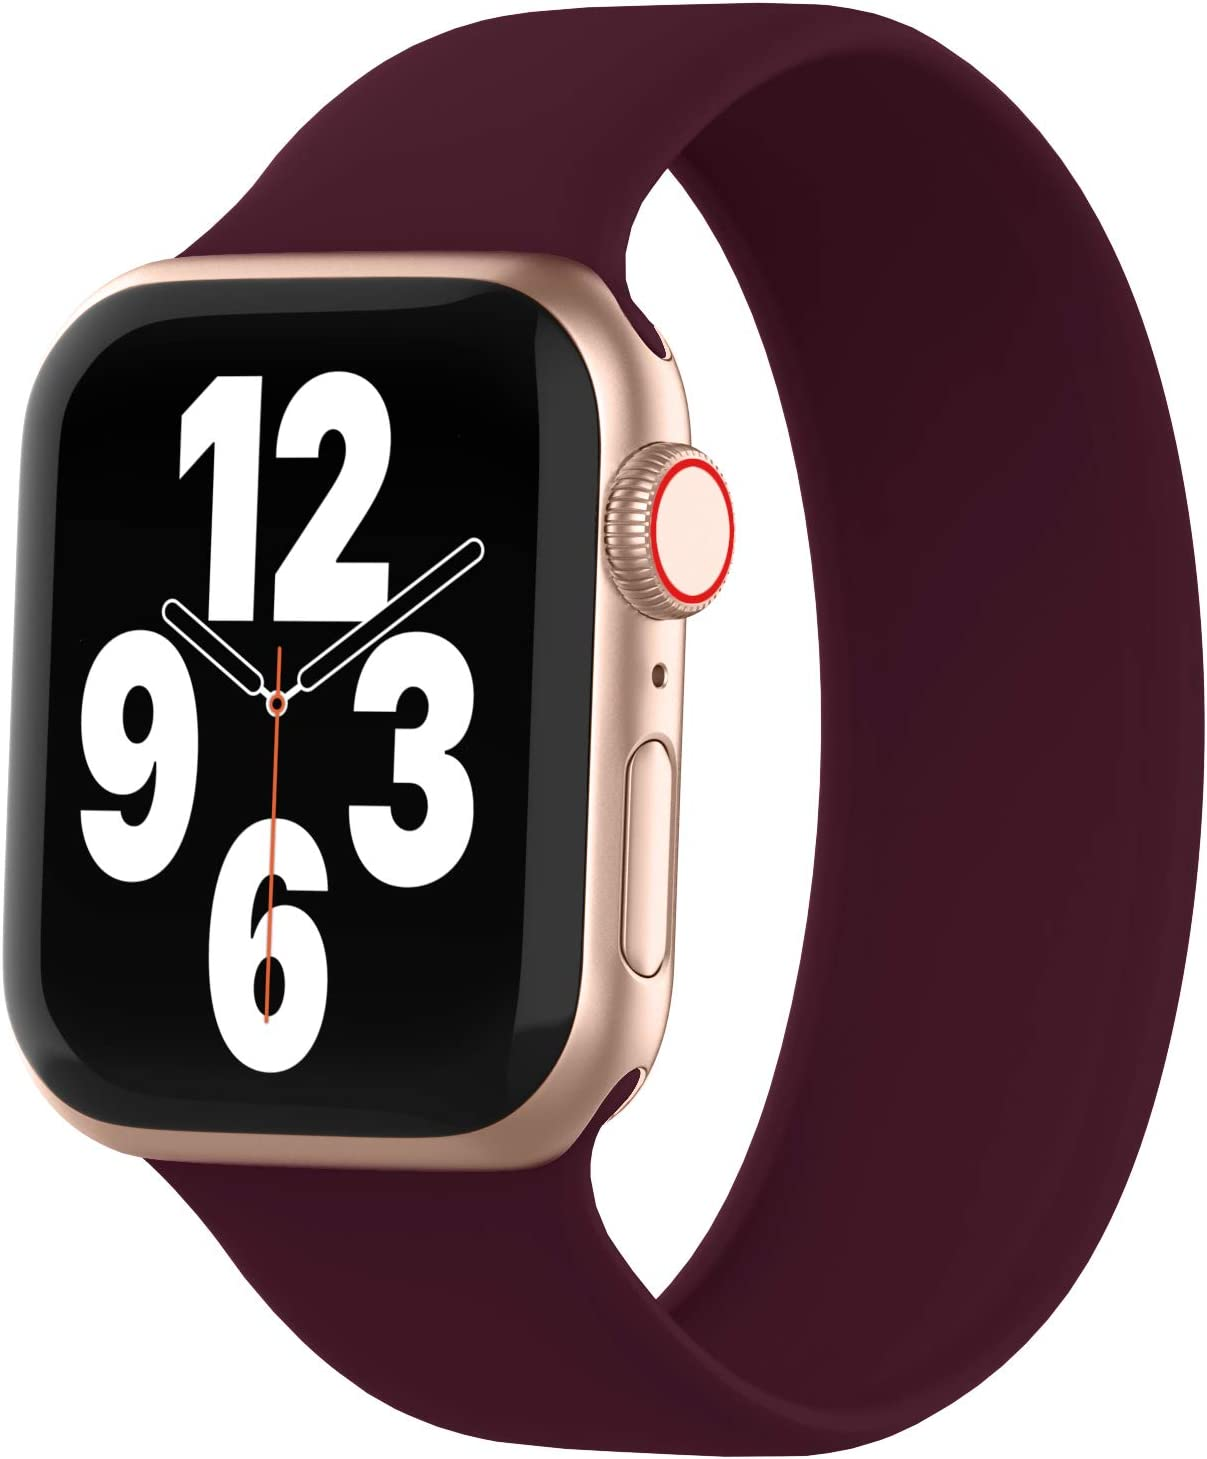 WASPO Solo Loop Band Compatible with Apple Watch Band 38mm 40mm 42mm 44mm, sport Elastic Silicone Bands with Noclasps or buckles Compatible for iWatch Series 6/SE/5/4/3/2/1(38mm/40mm-S, Wine Red)